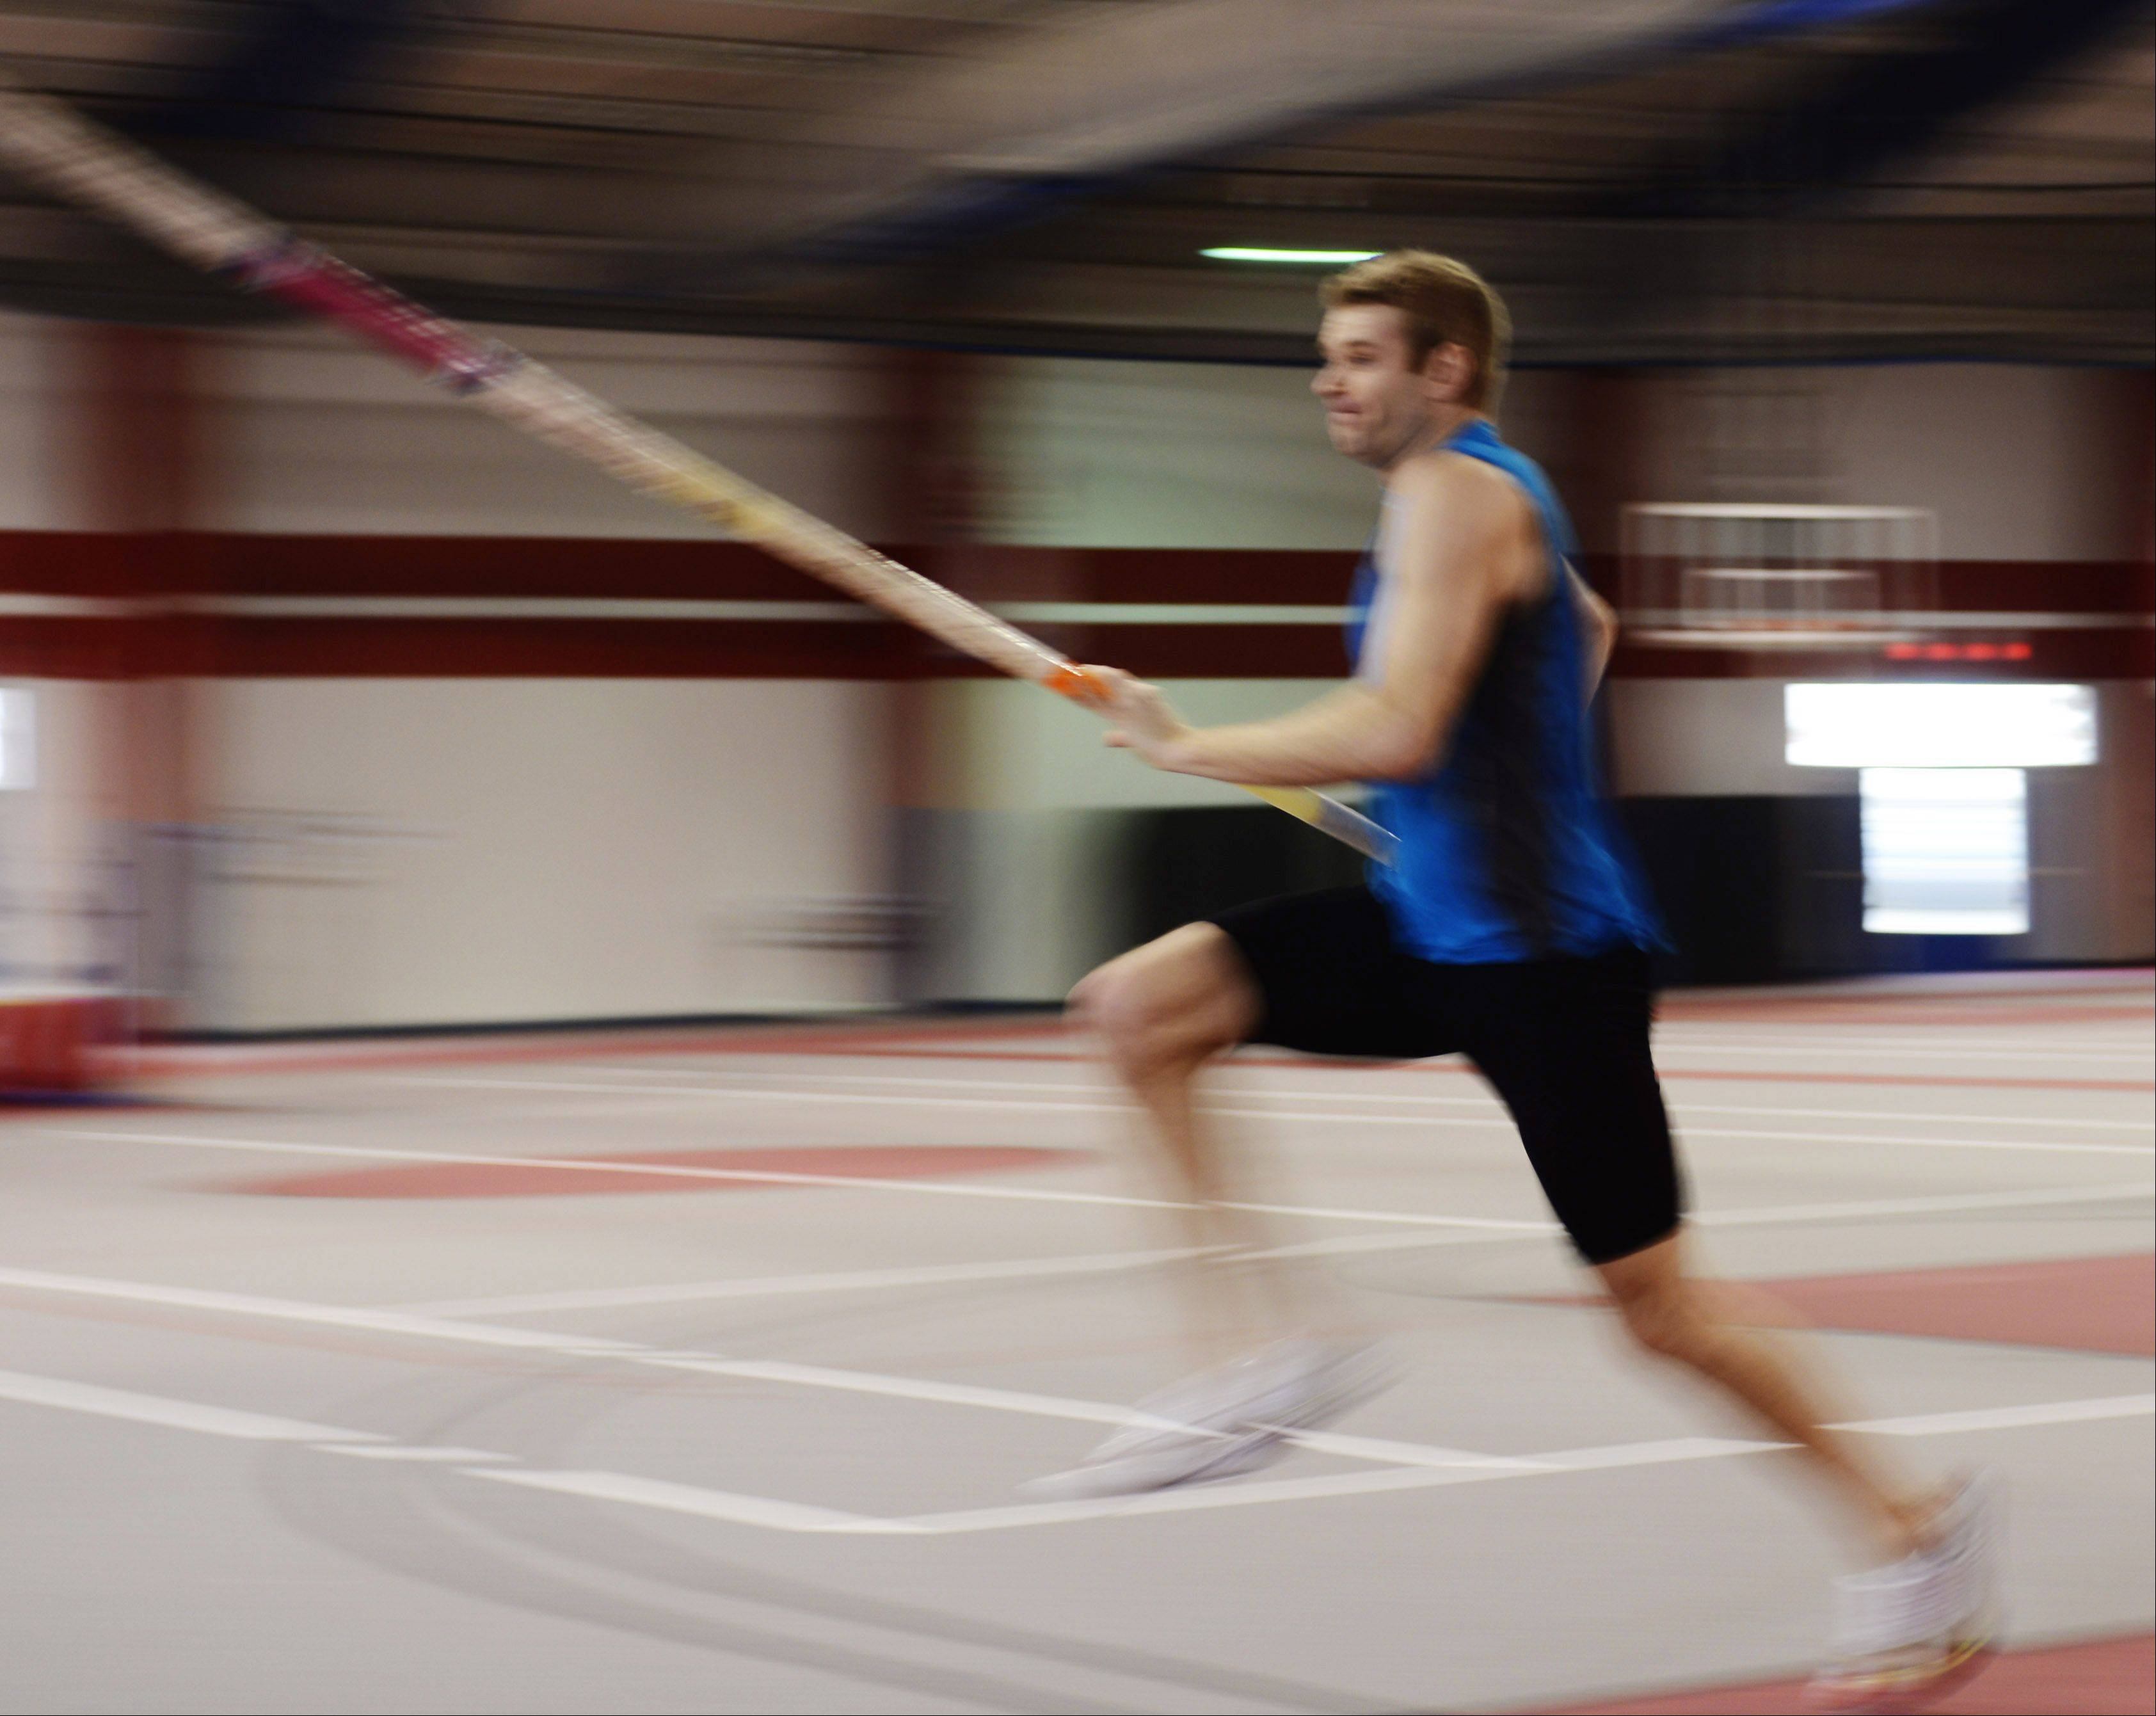 Pole vaulter Darren Niedermeyer gathers speed during practice at the Lewis University Field House.